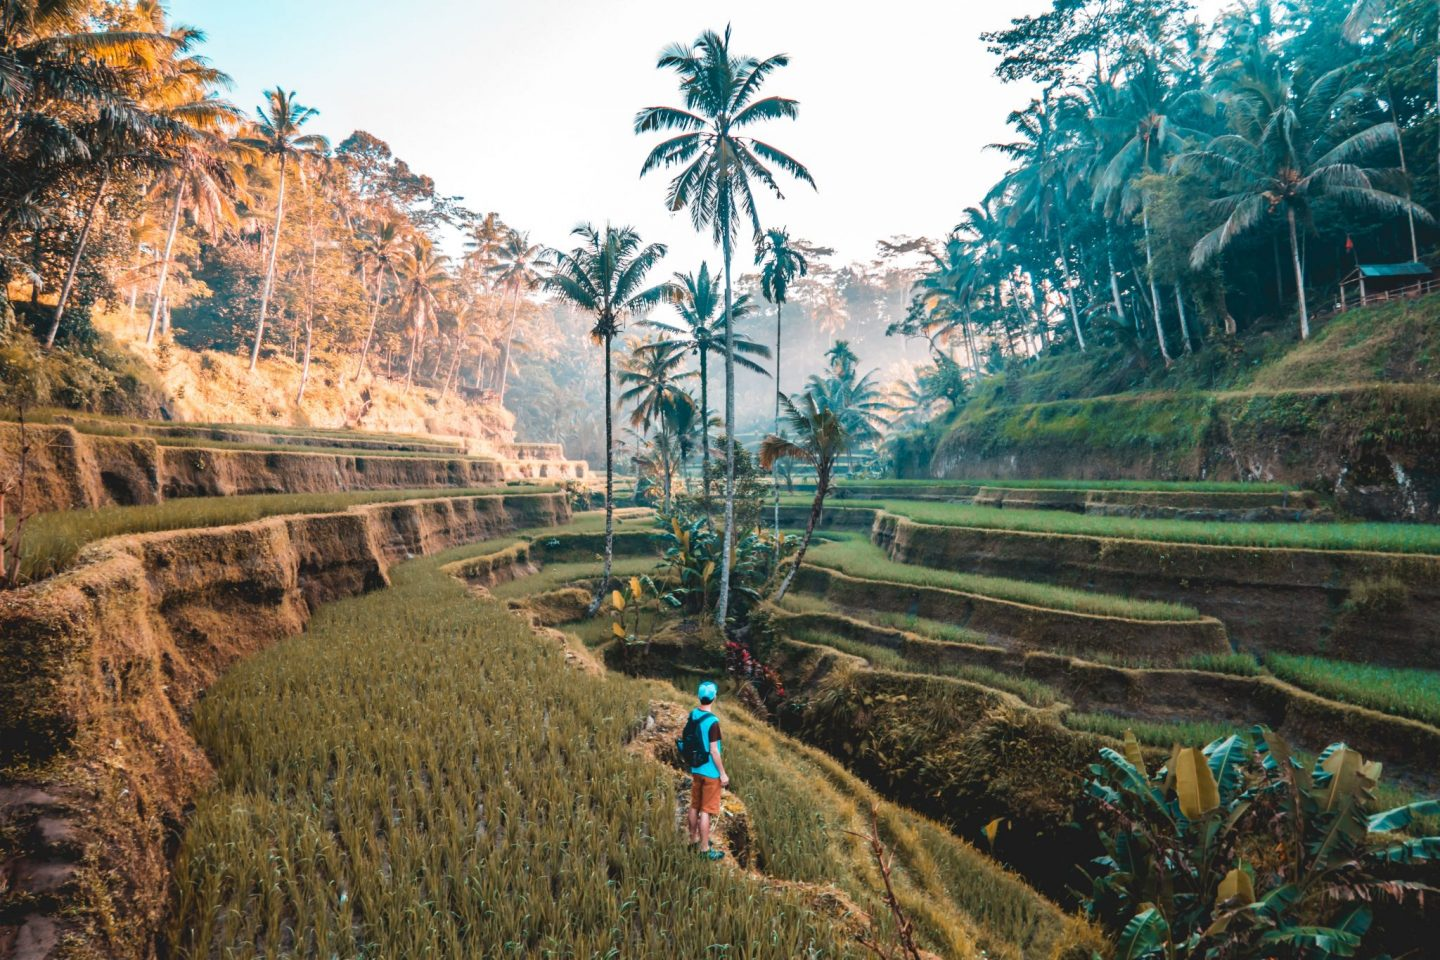 rice fields, palmtrees, travel, traveling, wanderlust, travel blogger, inspire, inspiration